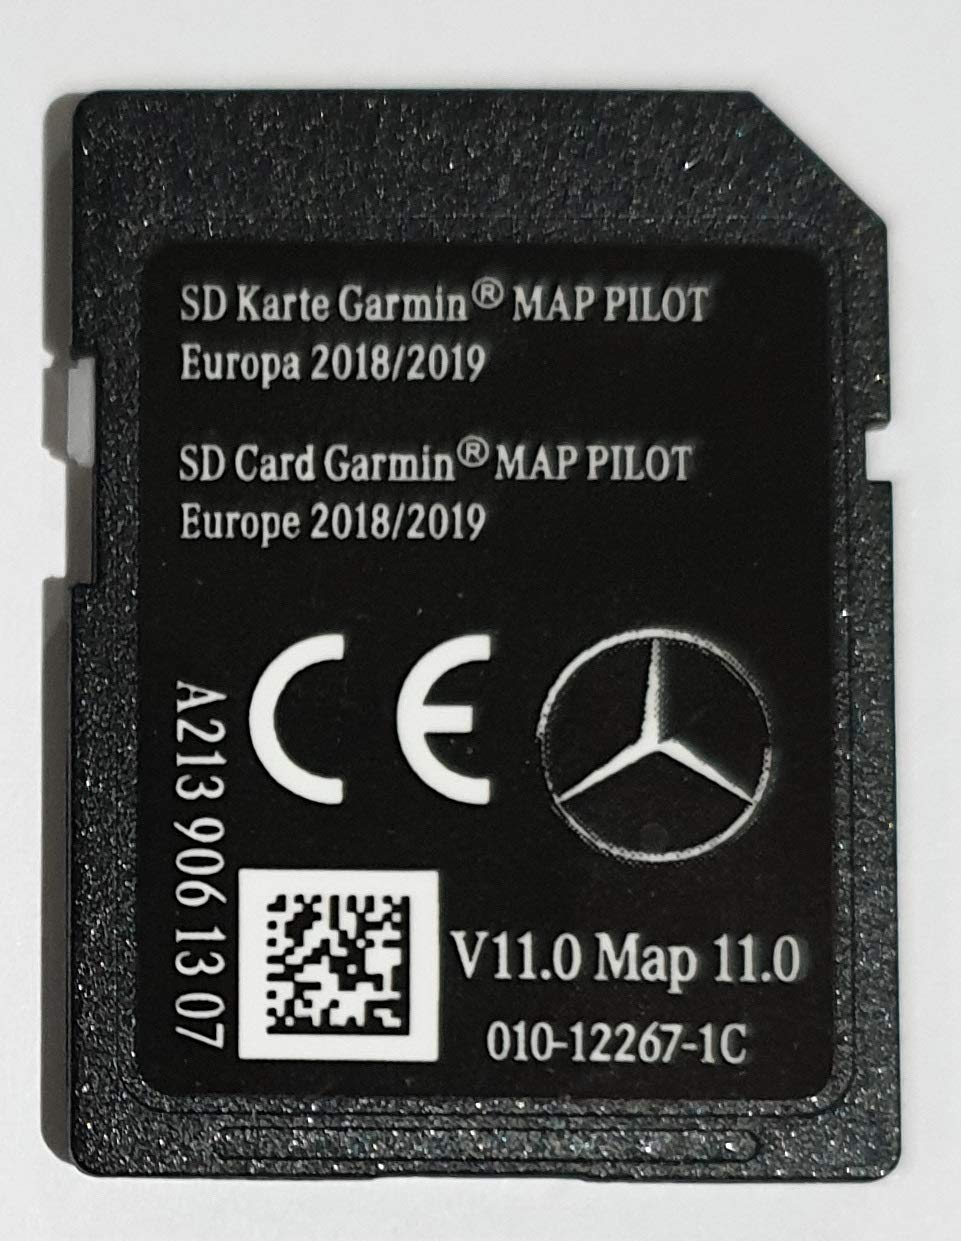 SD Karte Mercedes Garmin MAP Pilot Europe 2018-2019 - STAR2 - A2139061307 here